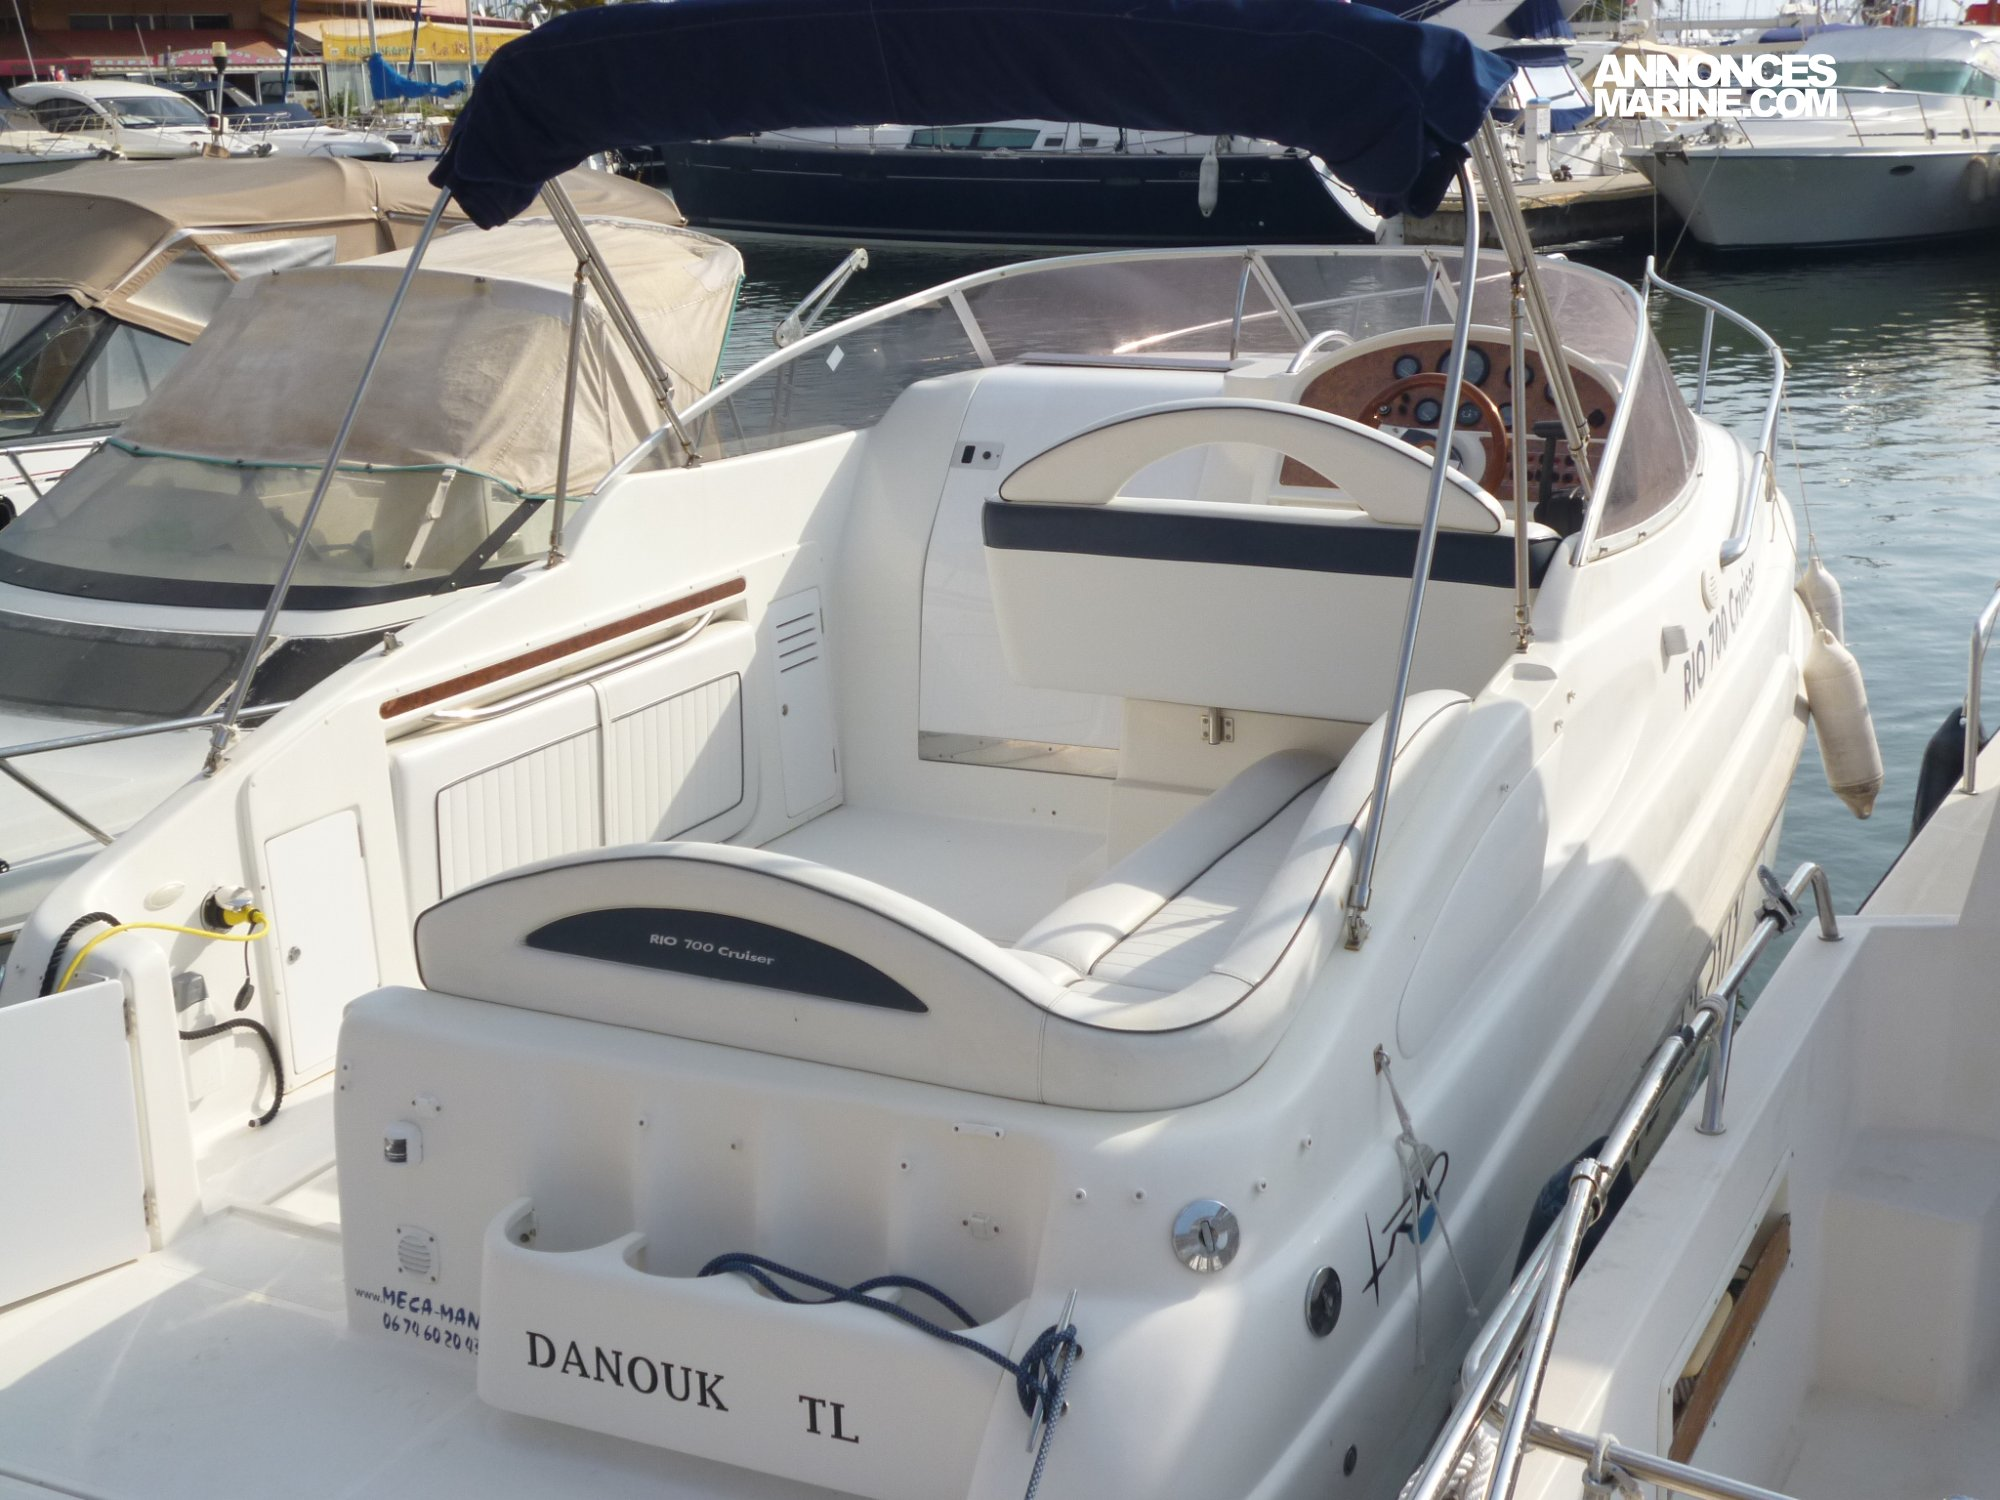 Bateau rio 700 cruiser day cruiser occasion la vente - Place de port disponible mediterranee ...